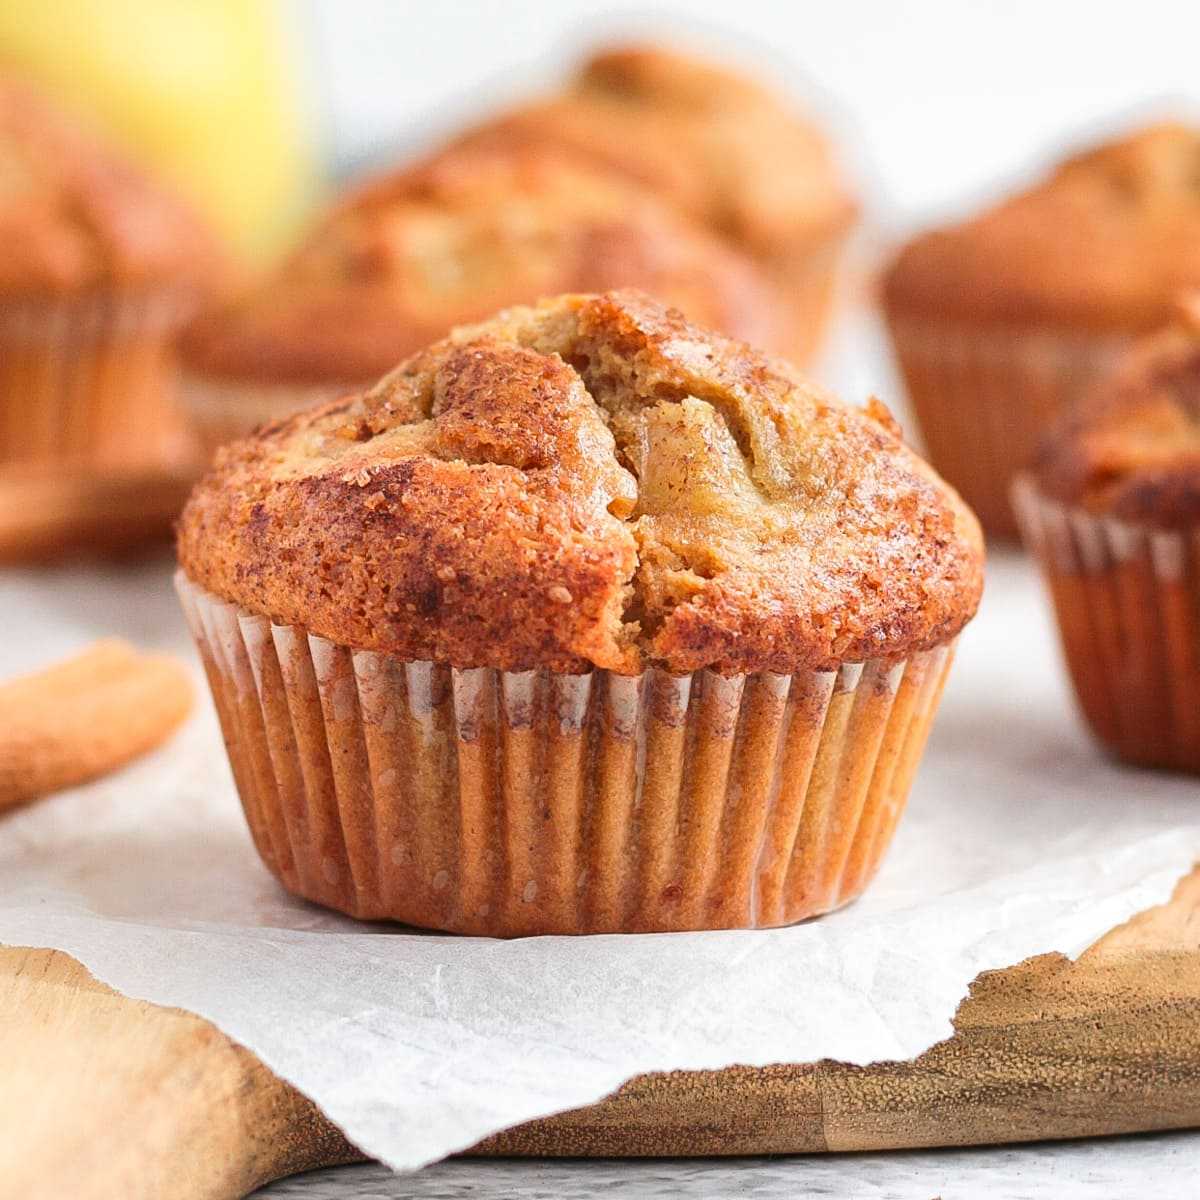 Close up on a pear muffin over baking paper and a wooden board